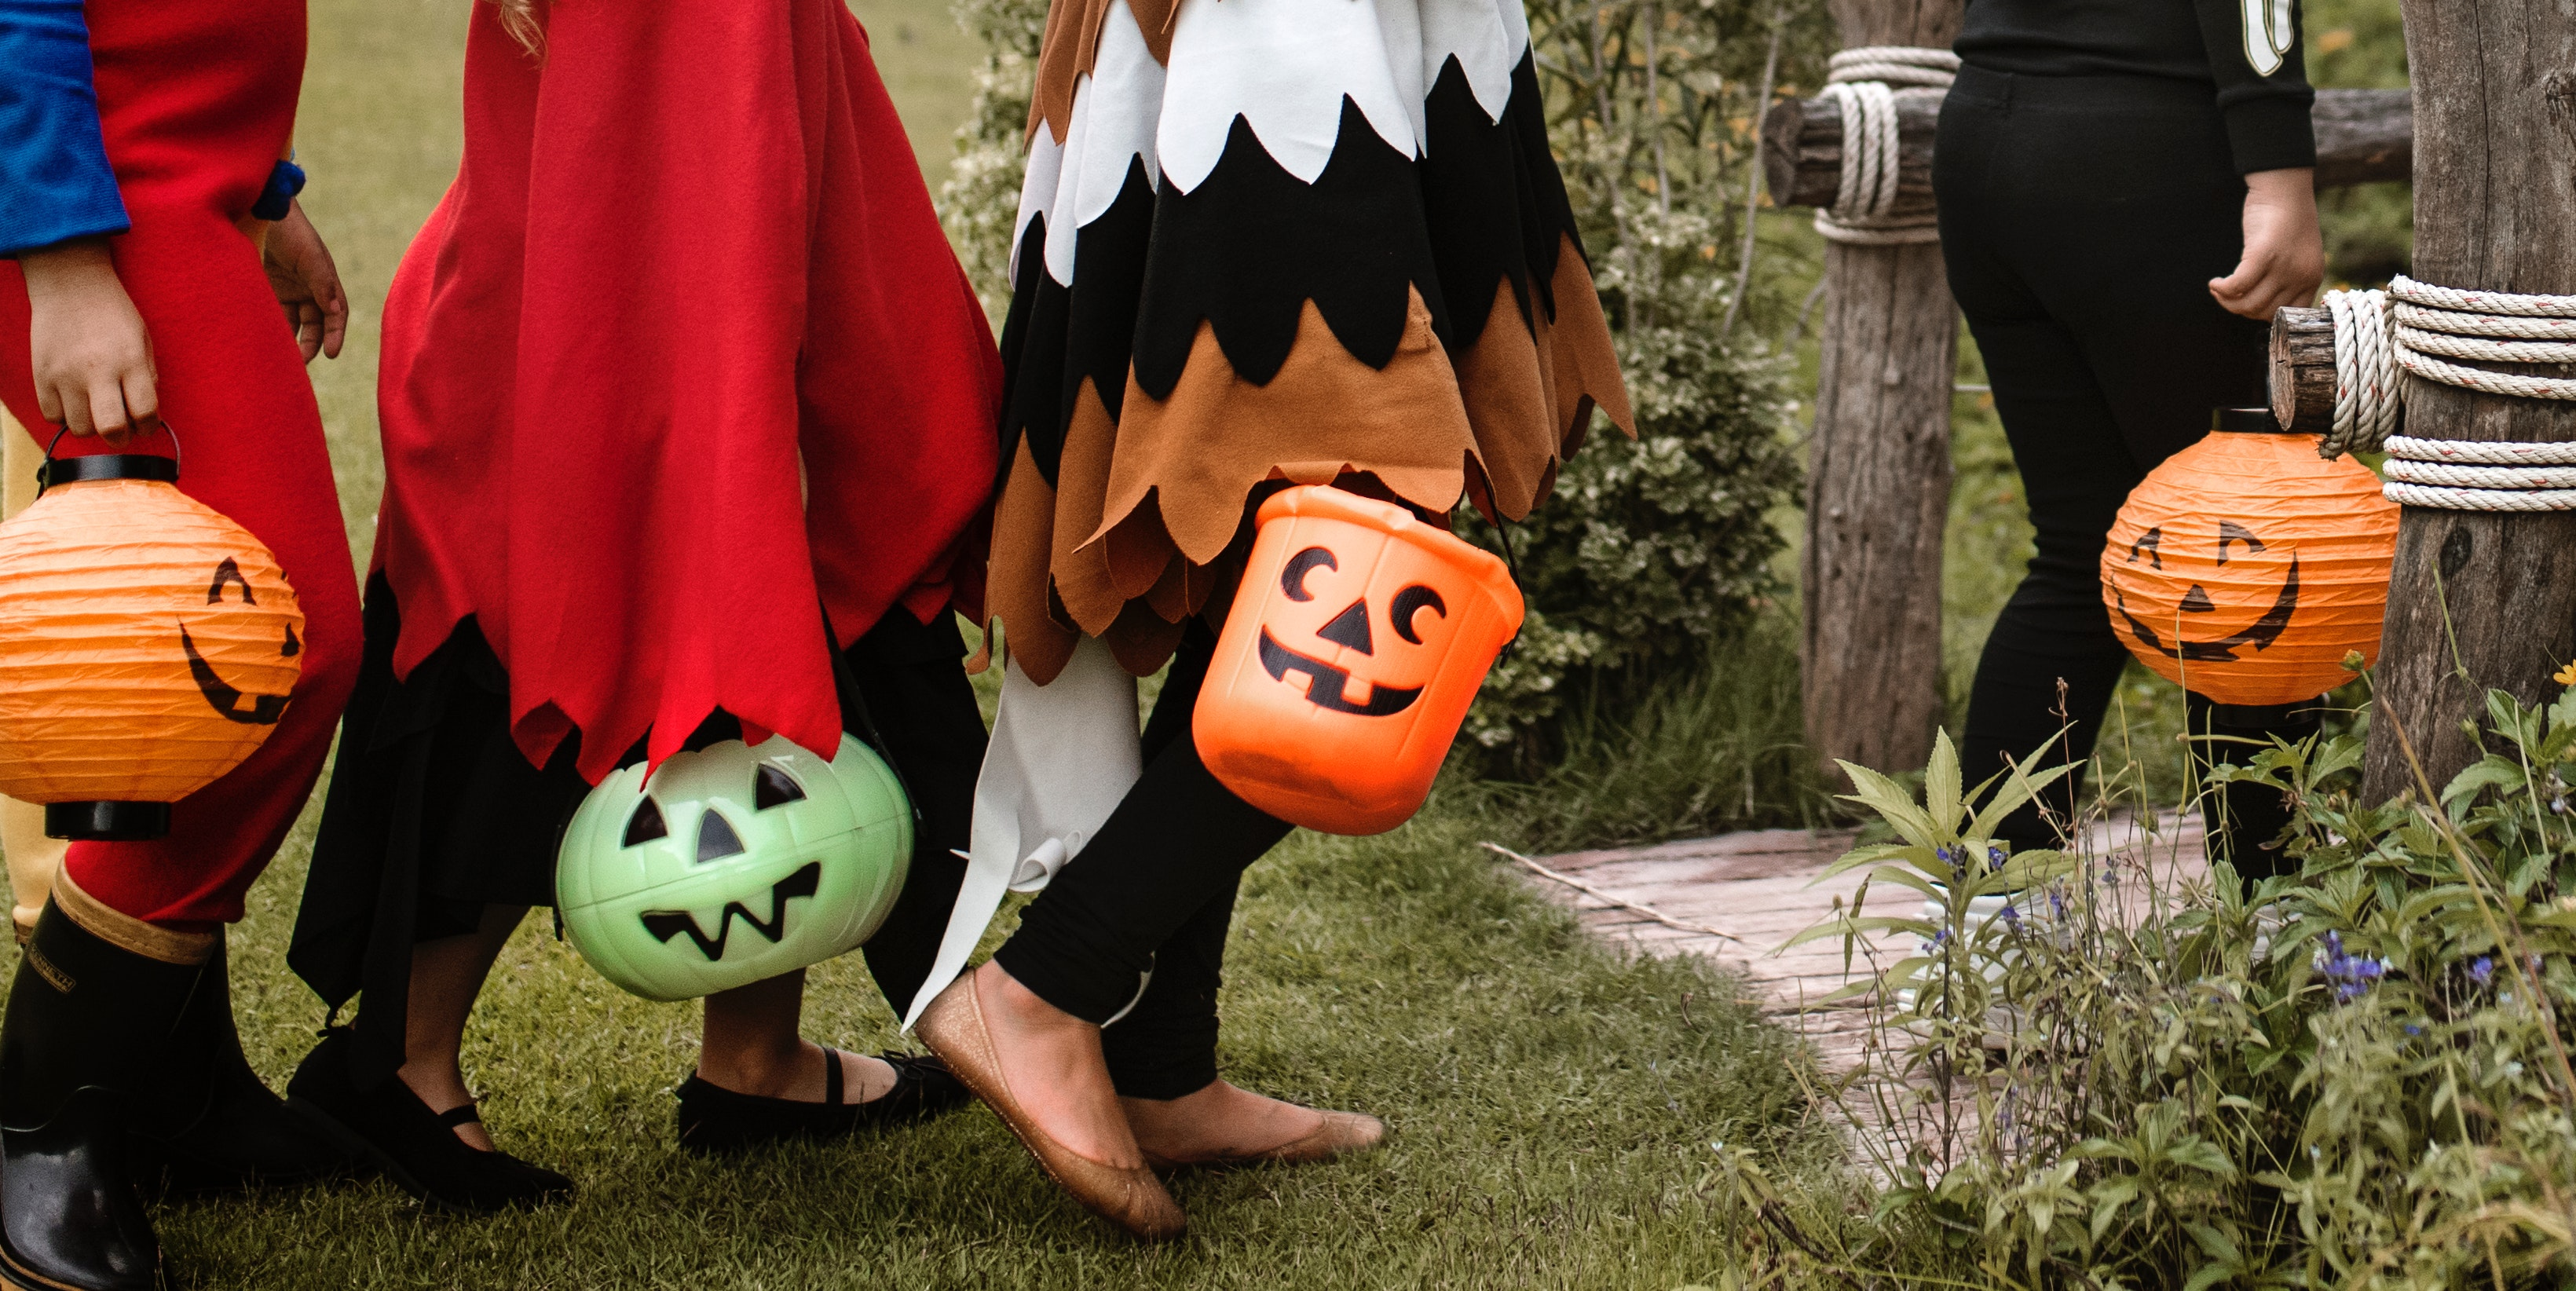 8 Halloween Safety Tips for Your Family